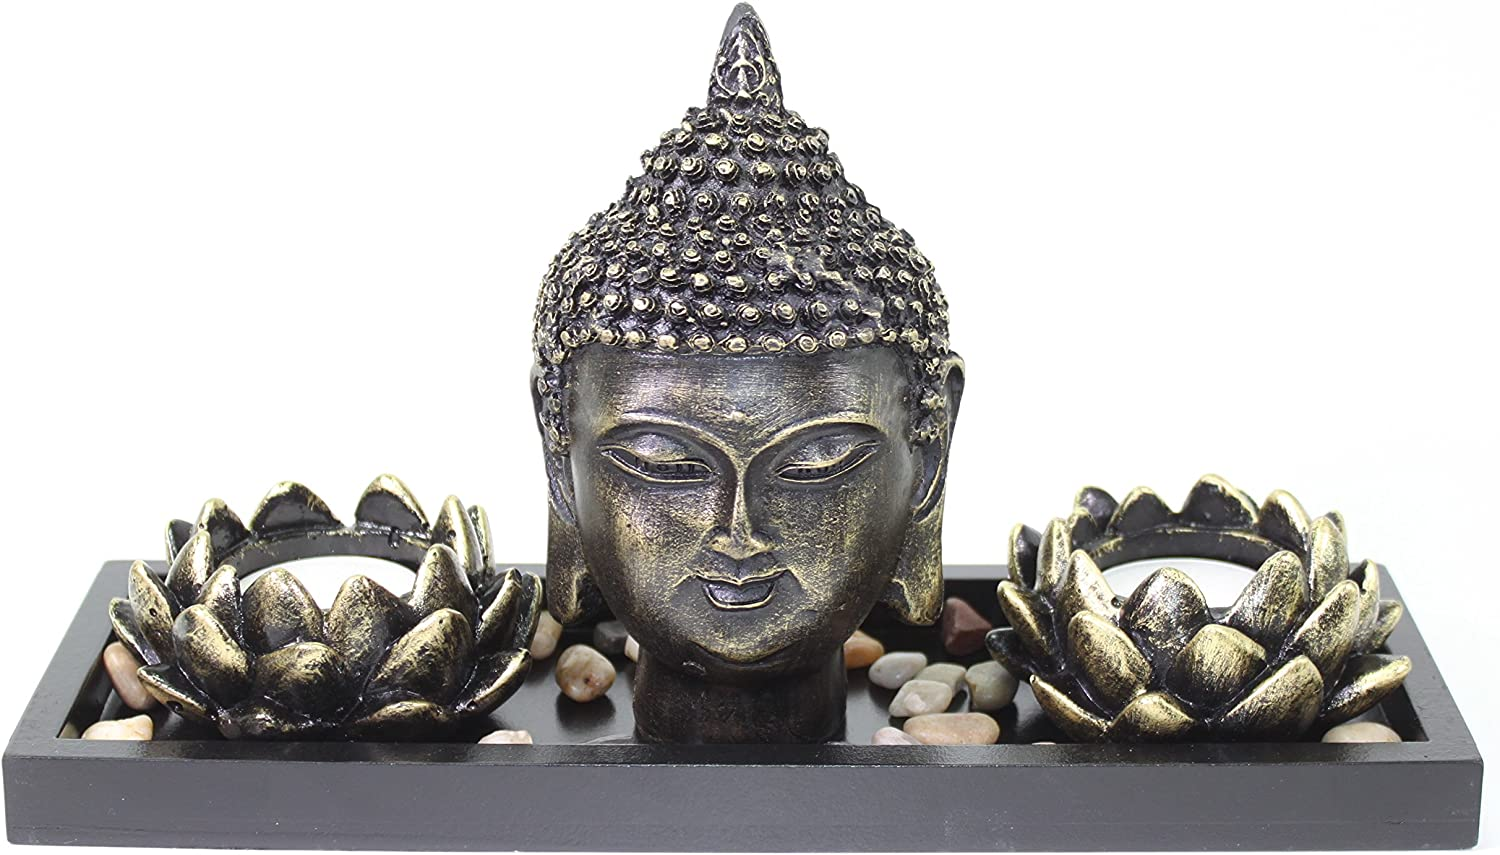 Tabletop Buddha Head Lotus Tea Light Candle Holder Home Decor Relaxing Gift Zen Garden Series